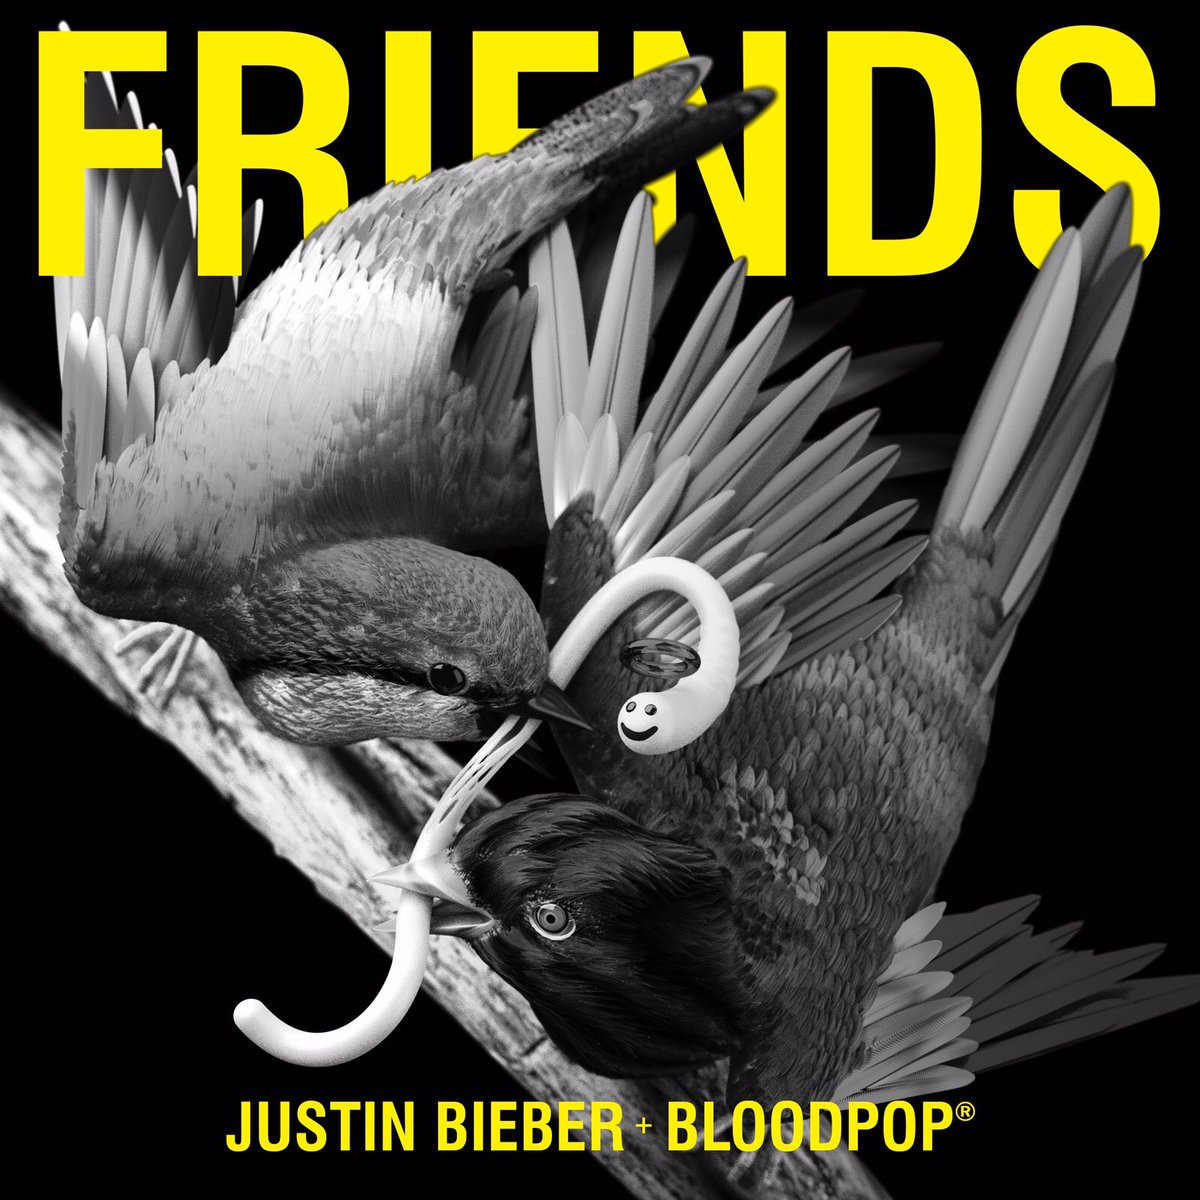 New music alert 🎶 @justinbieber x @bloodpop x #FRIENDS 🔥👫  Listen now...